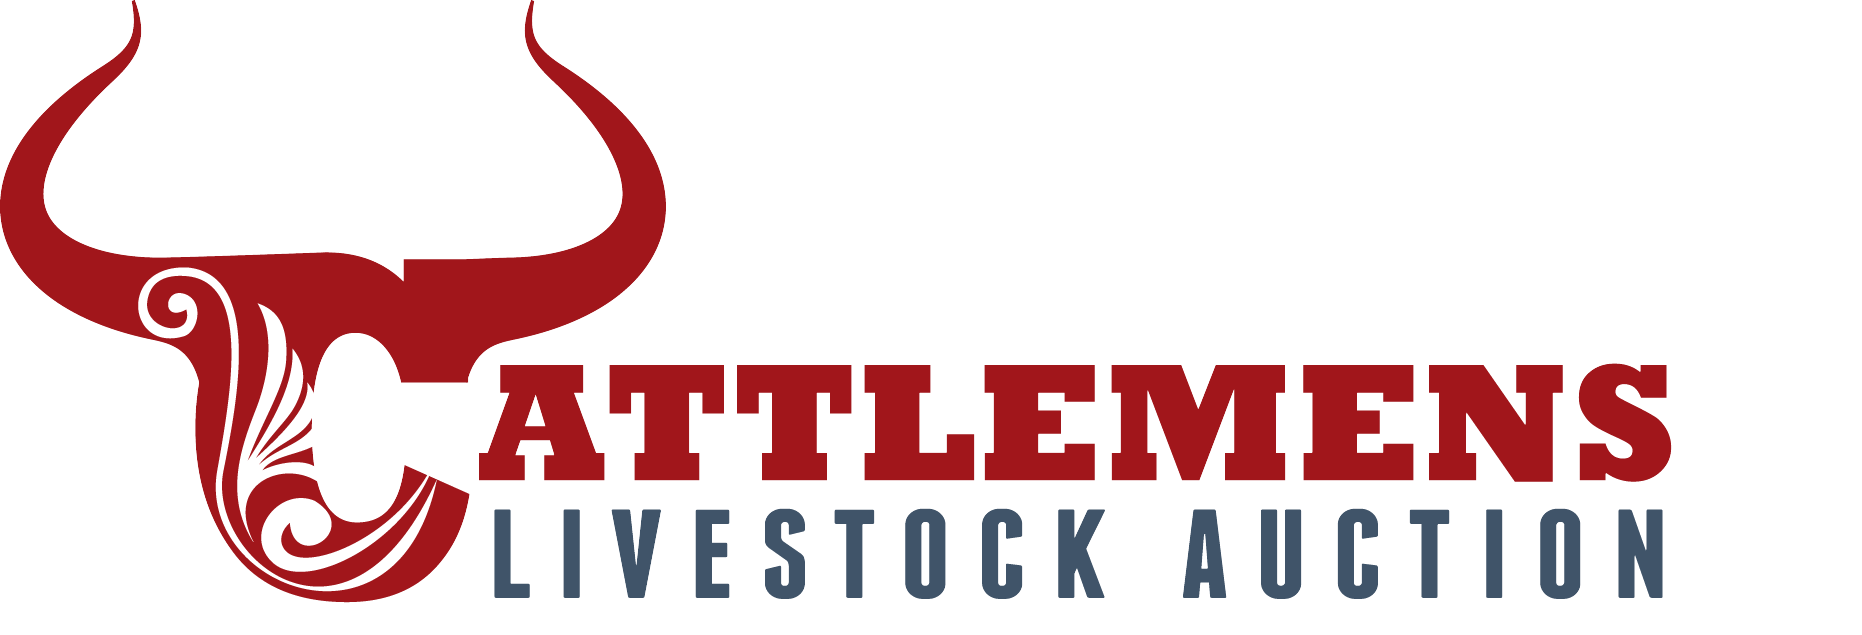 Cattlemens Livestock Auction